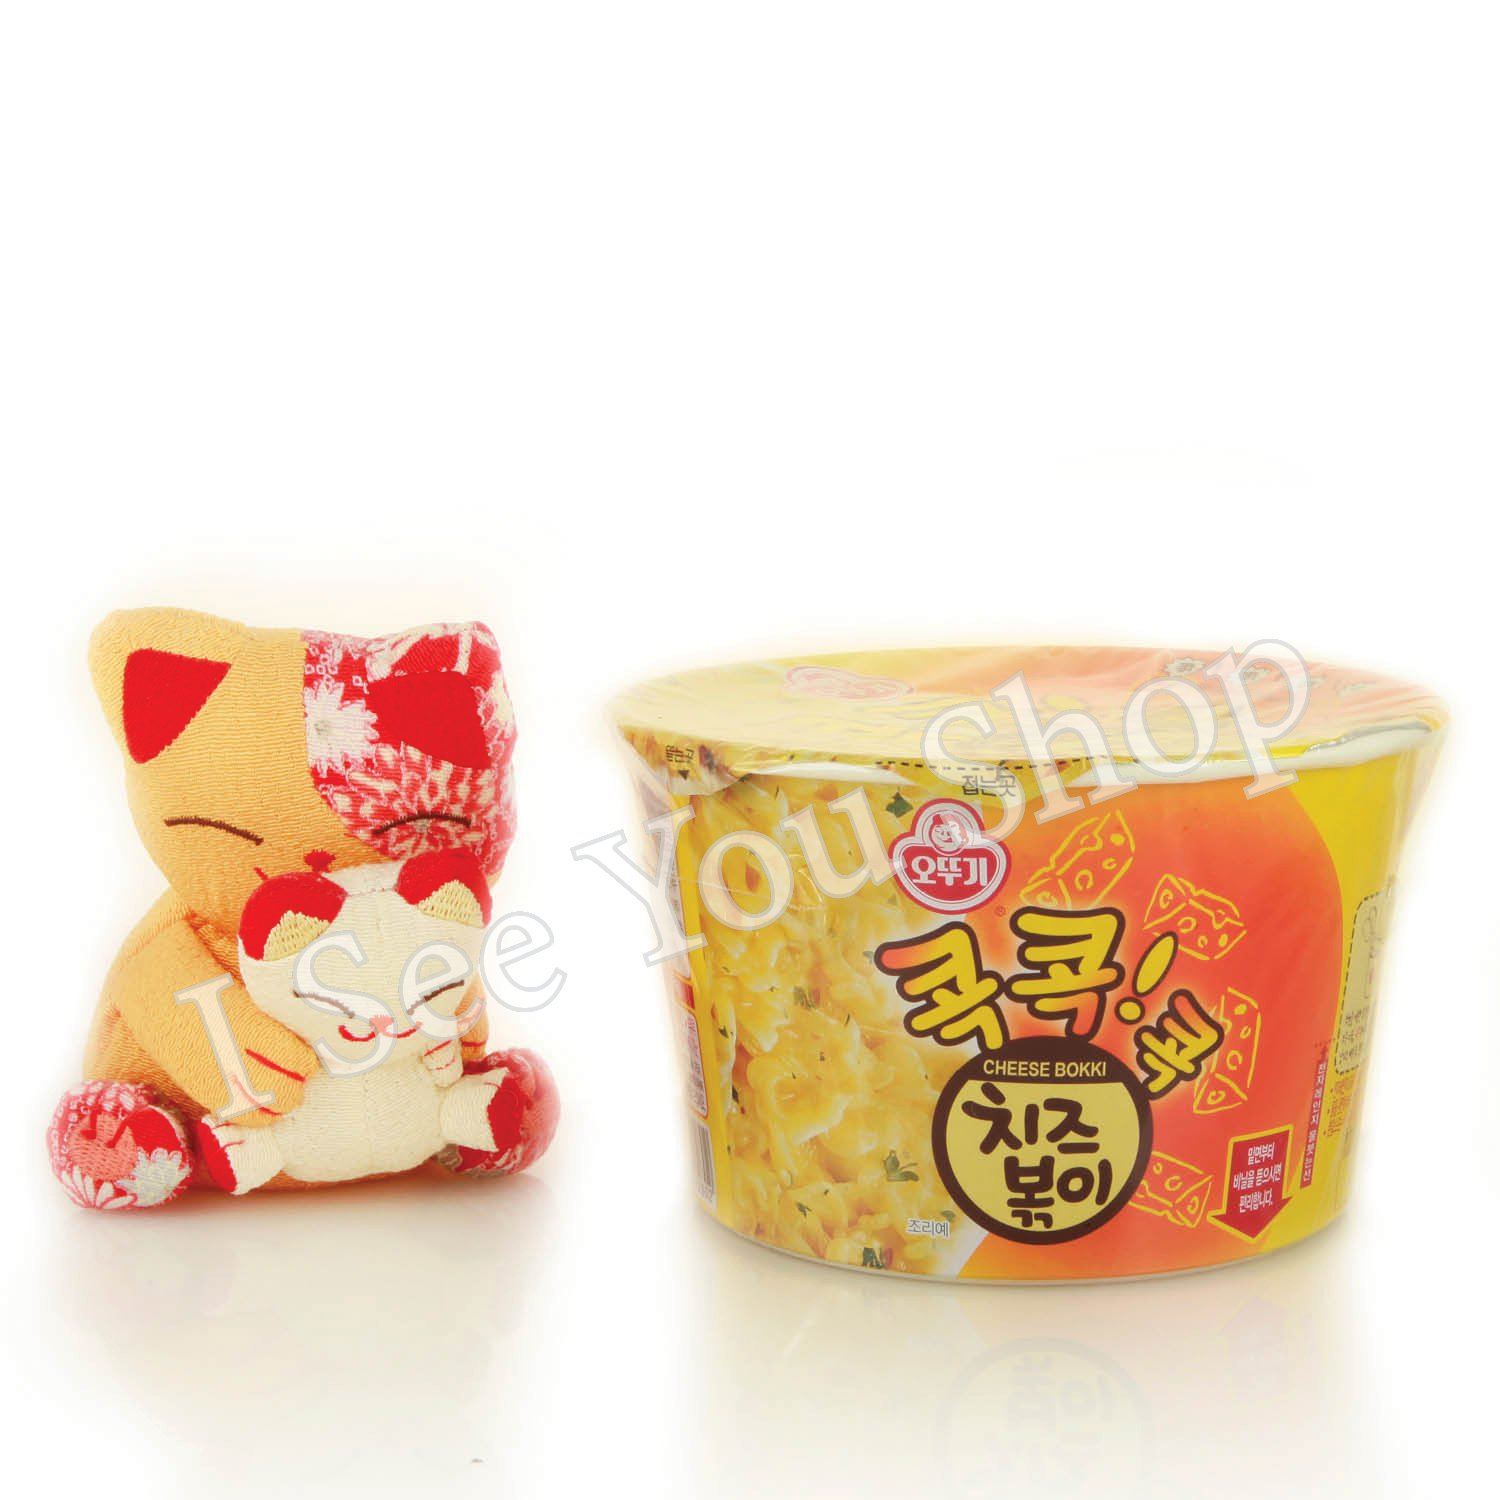 ��� �綿綿�士��麵 Ottigi Cheese Bokki Bowl 95g